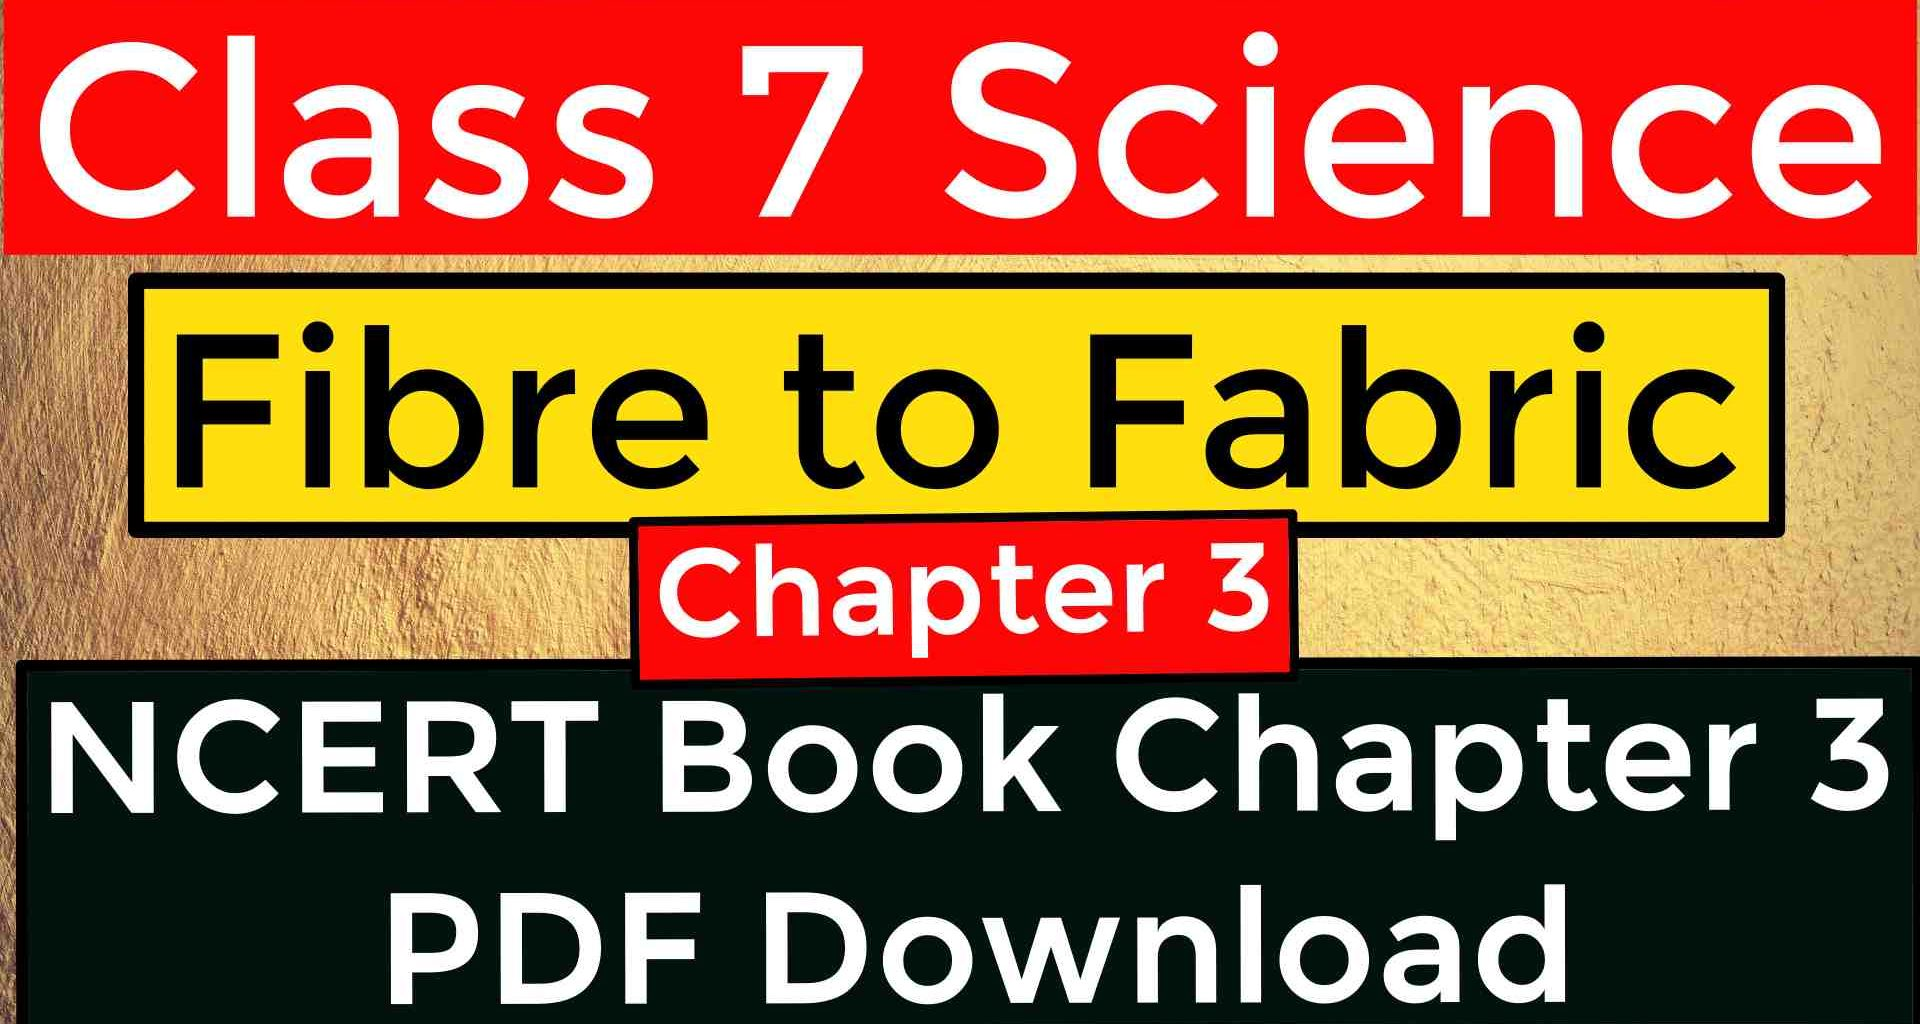 Class 7 Science - Chapter 3 - Fibre to Fabric - NCERT Book Chapter PDF Download